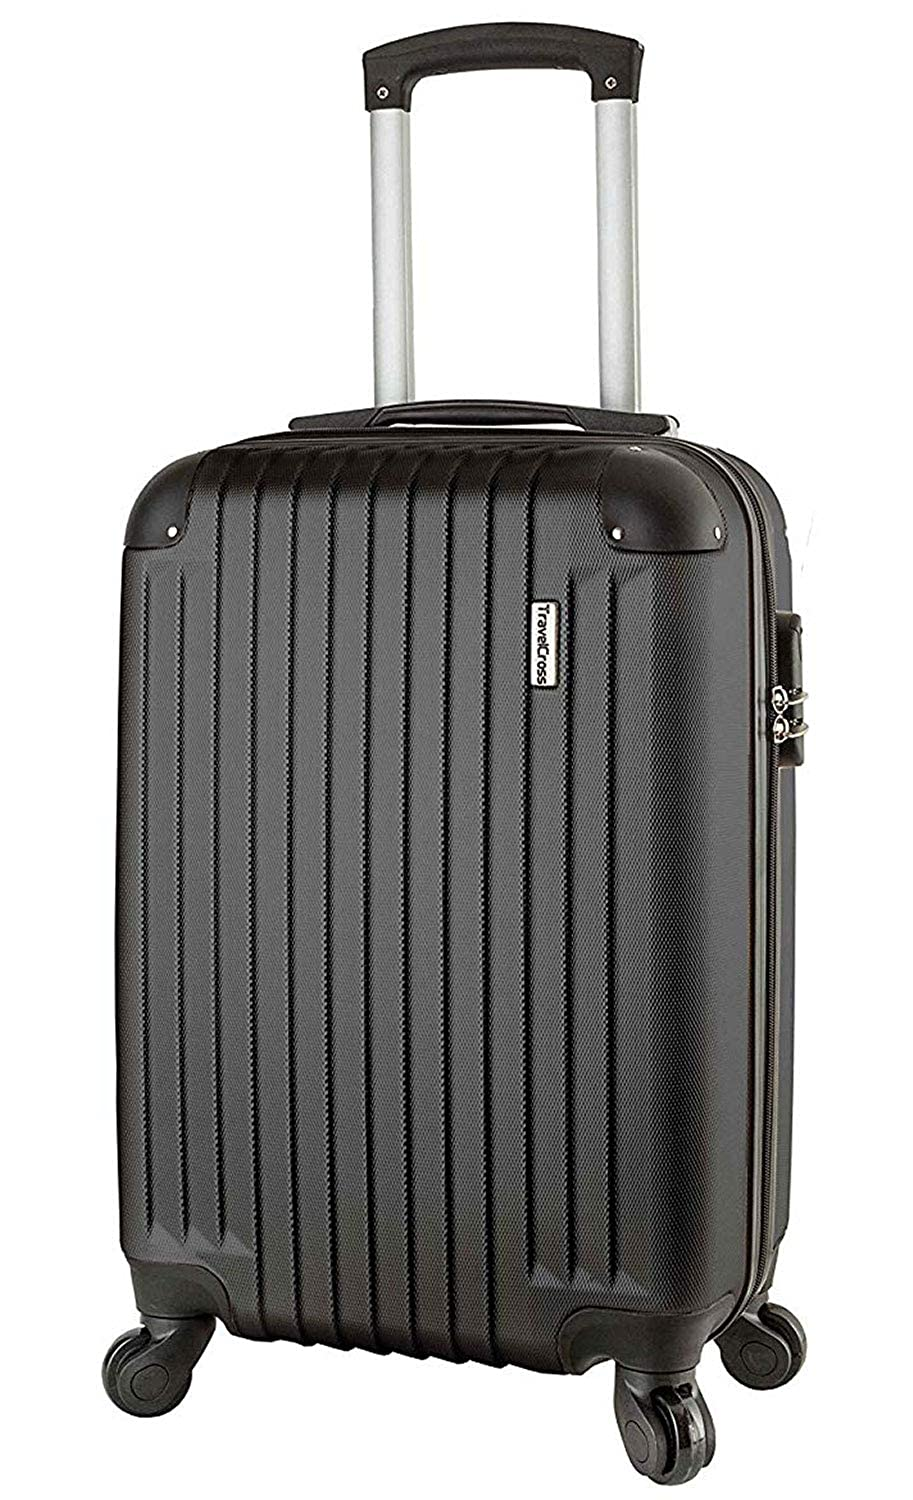 TravelCross Columbia Carry On Lightweight Hardshell Spinner Luggage